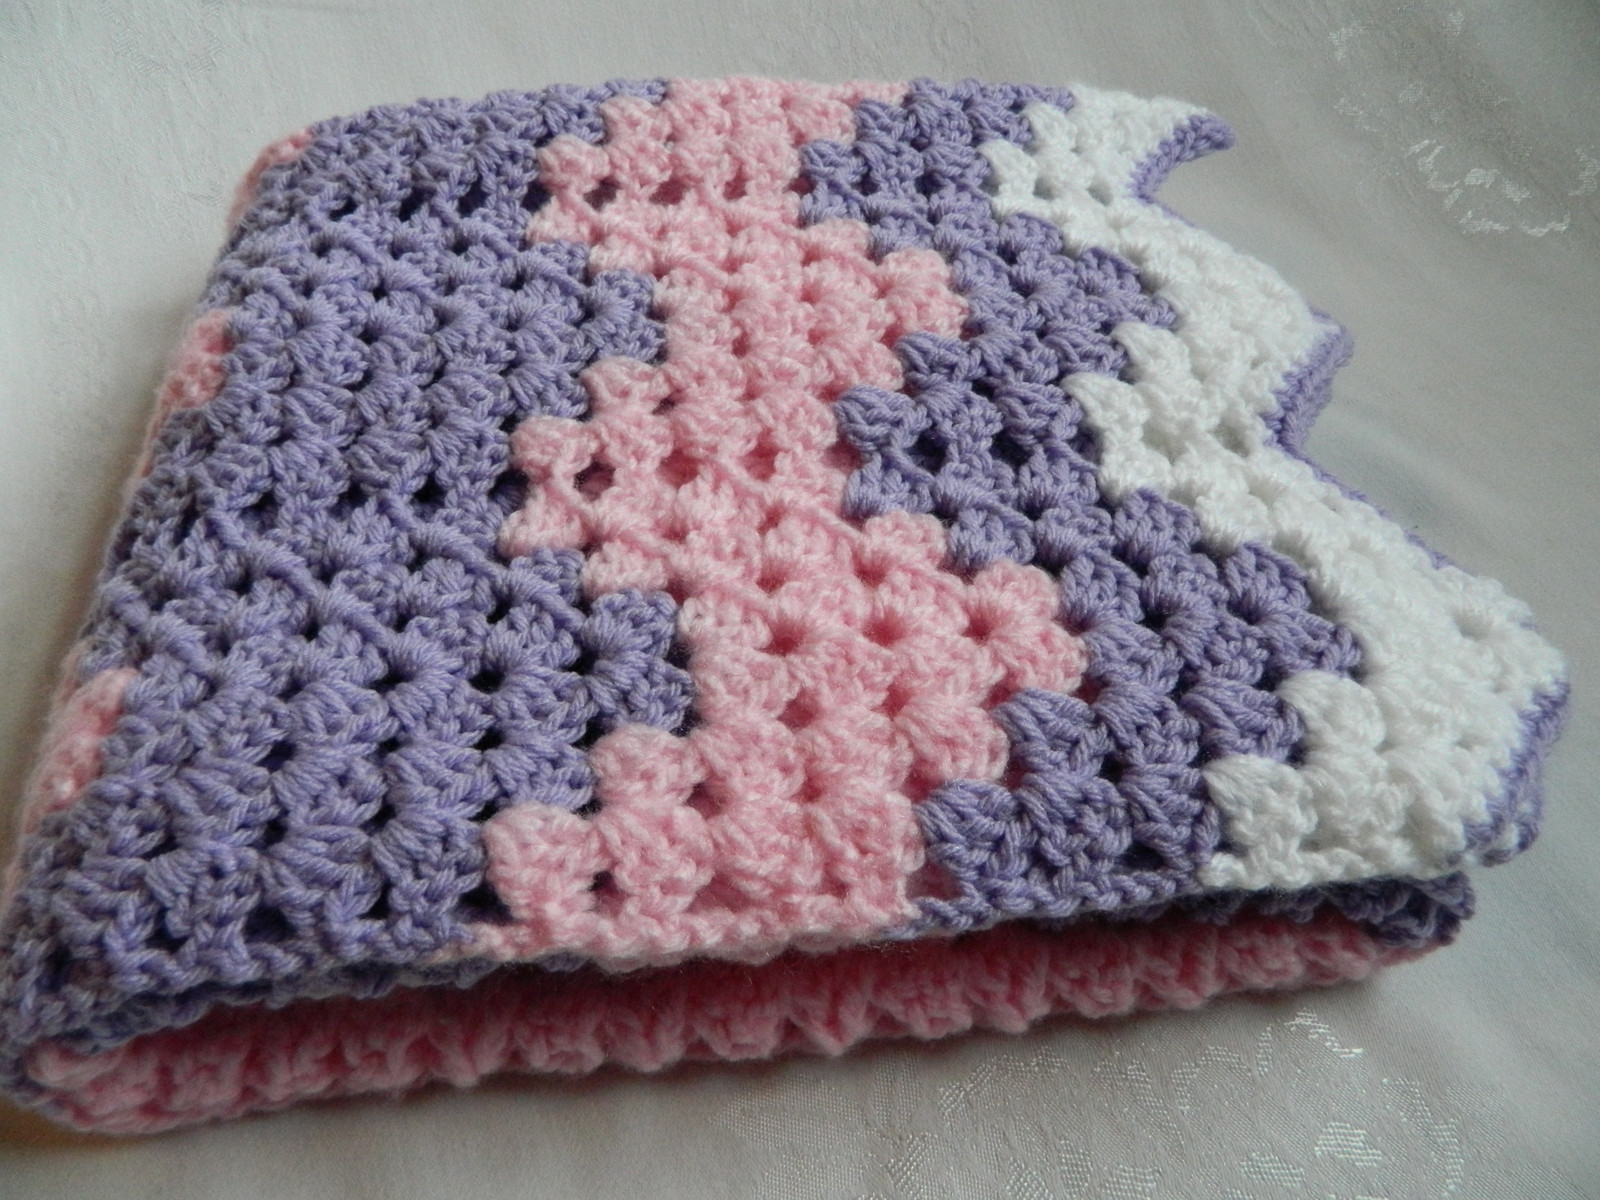 New Hand Crochet Granny Wave Pastel Afghan Blanket Bernat Bernat softee Baby Crochet Baby Blanket Of Awesome 48 Ideas Bernat softee Baby Crochet Baby Blanket